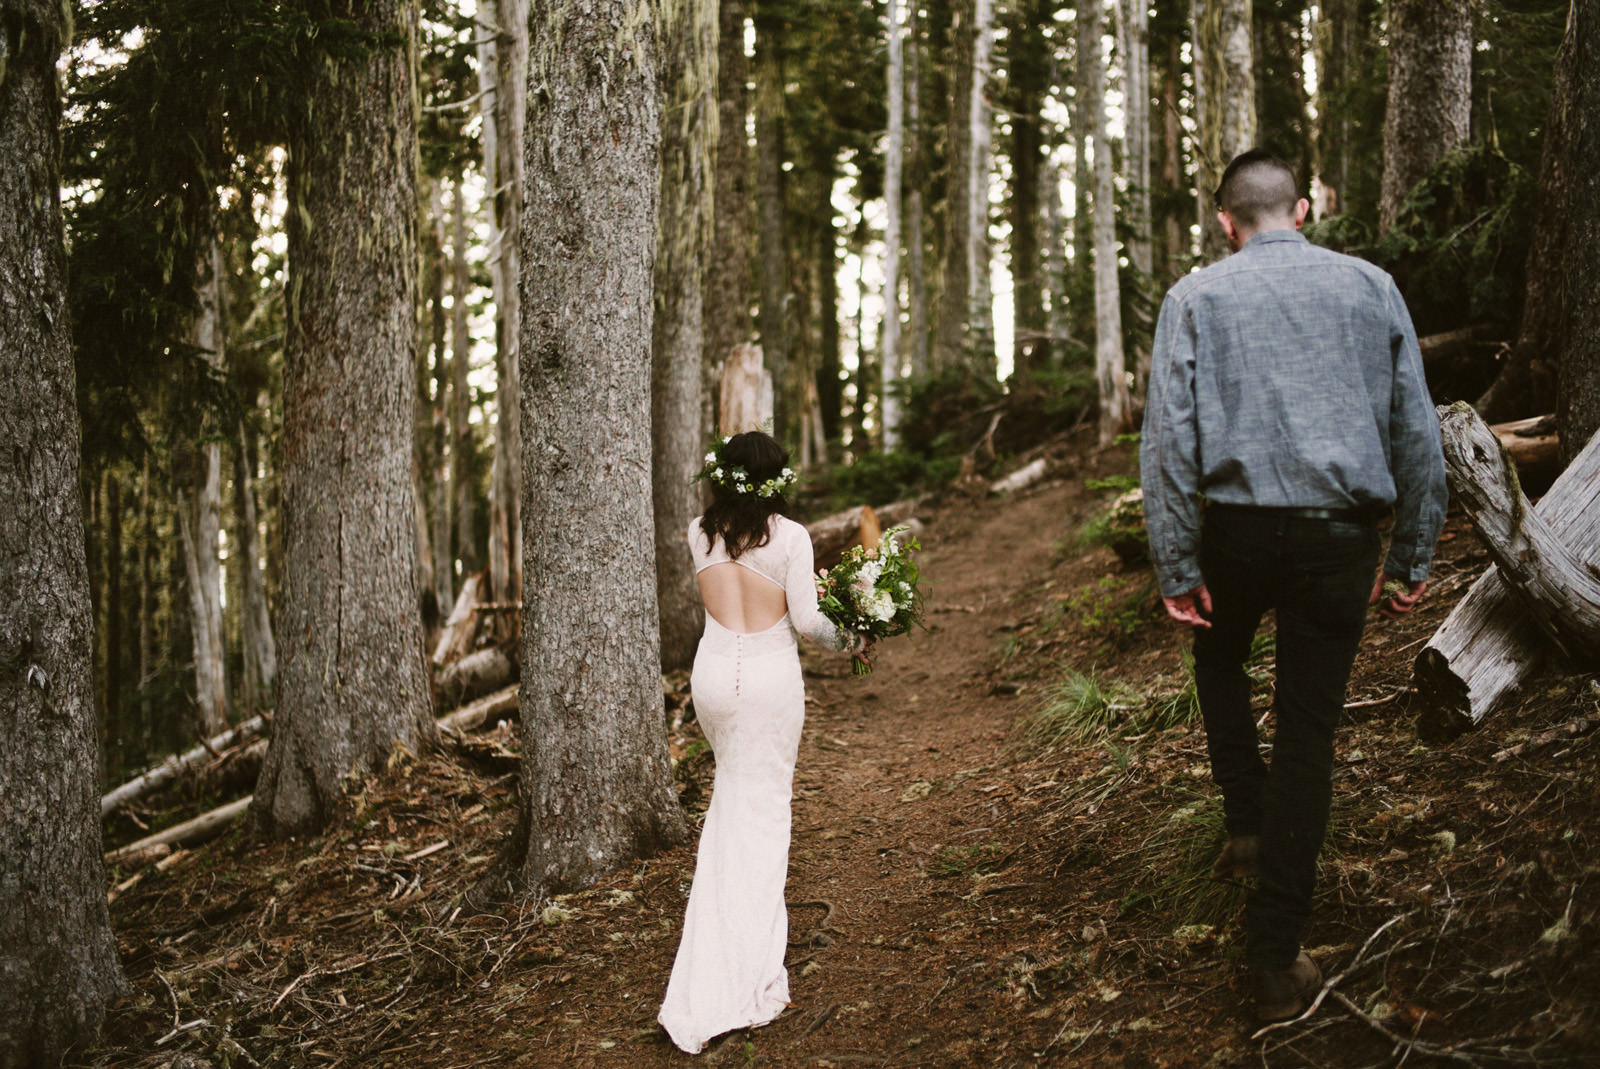 katelynnethan-blog-18 MOUNT RAINIER LOOKOUT ELOPEMENT